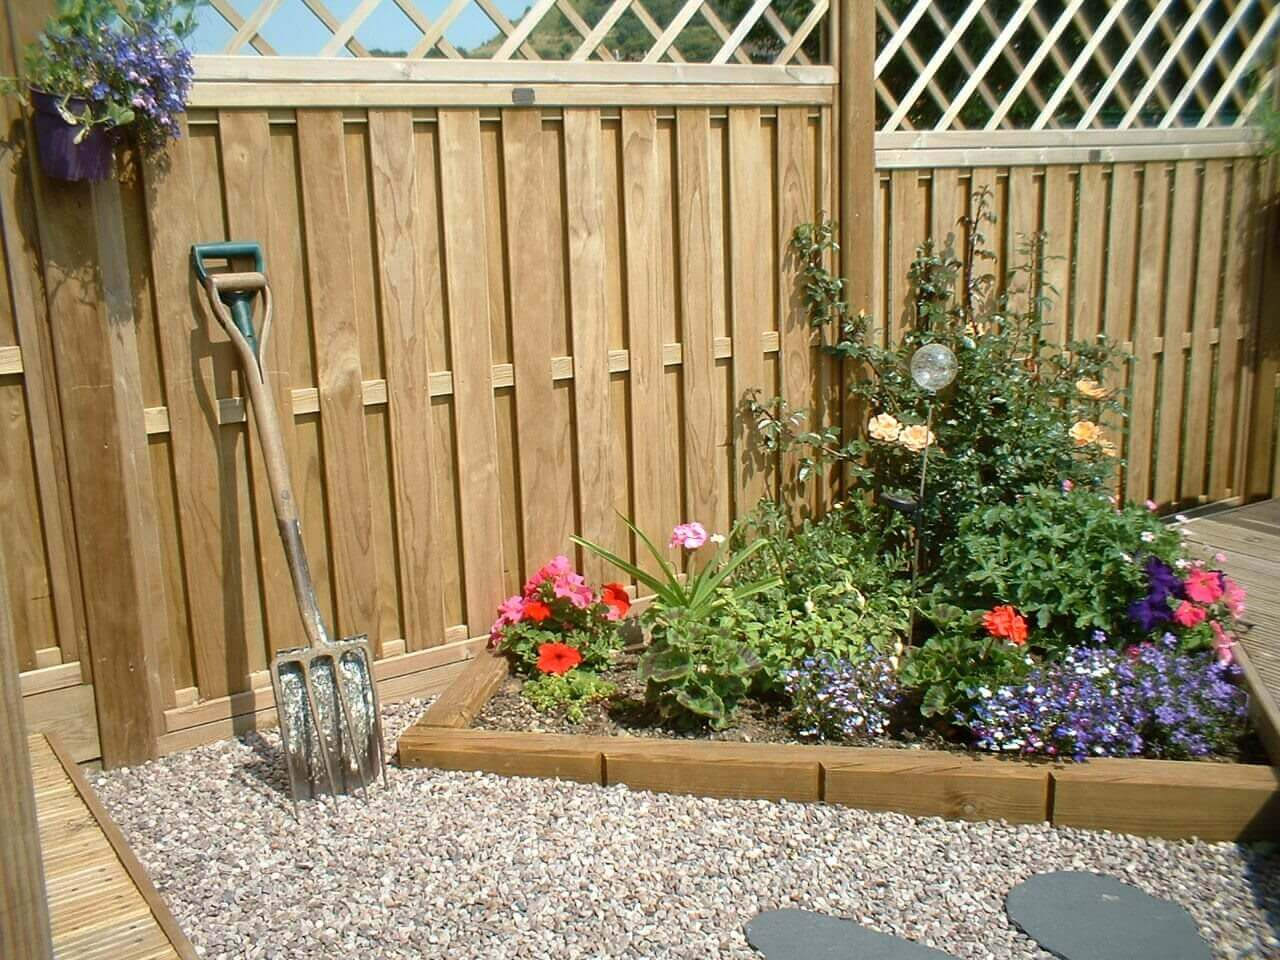 Hit and miss fencing panels with trellis topper